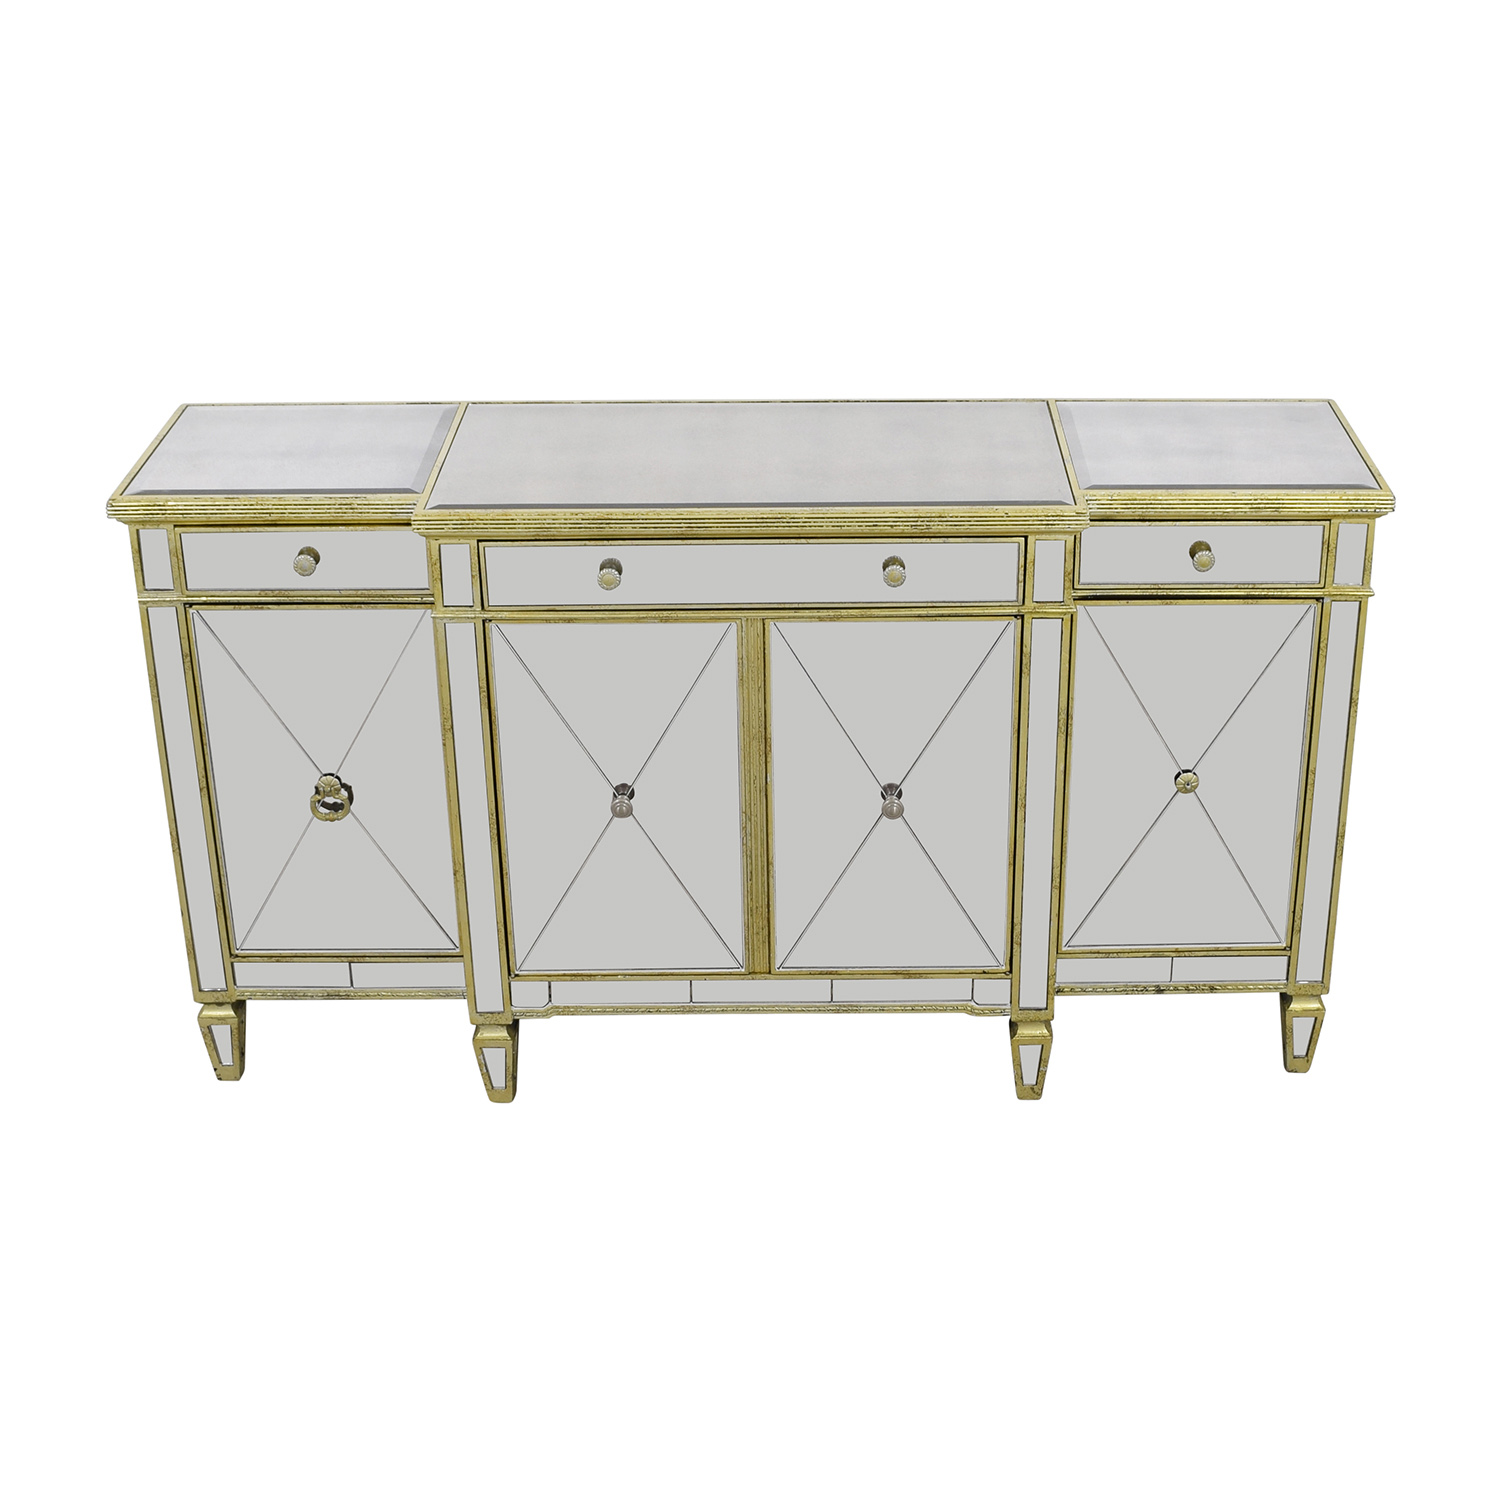 Horchow Horchow Amelia Mirror and Gold Console price